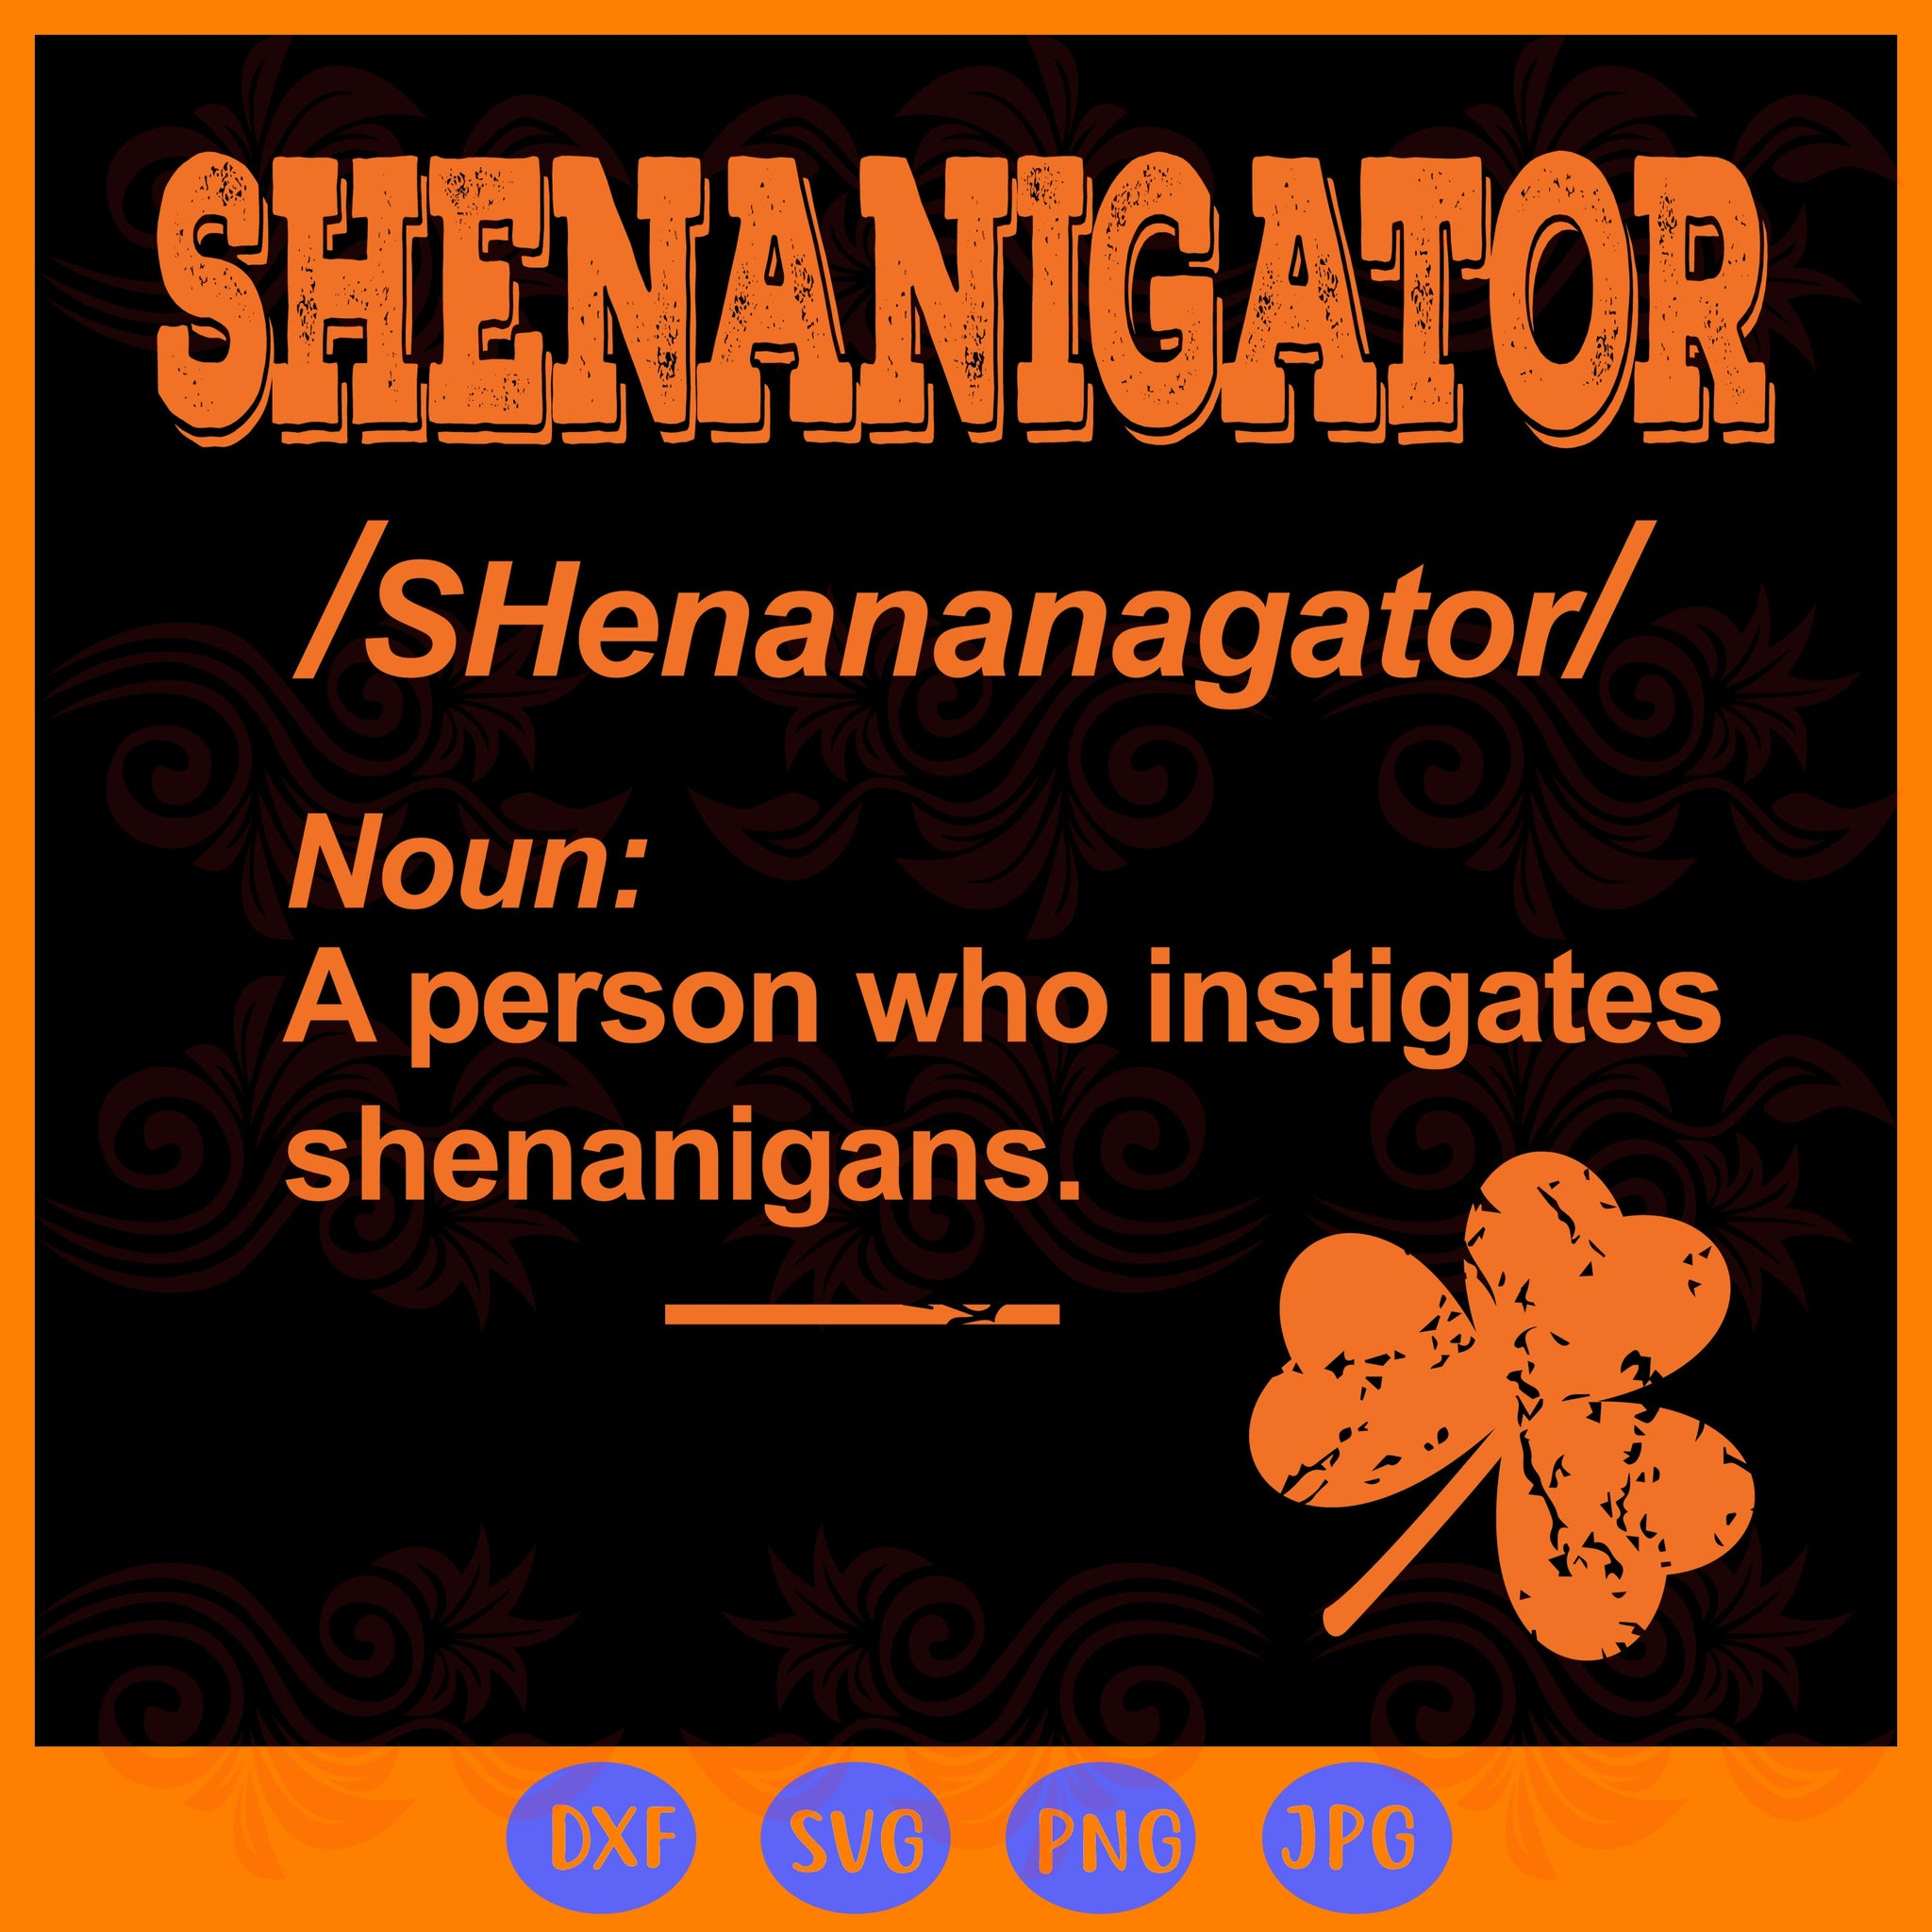 Shenanigator definition,  st patrick svg, shenanigator svg, st patrick's day, patrick svg, patrick's day, funny gifts, patrick day gifts, shenanigator gifts,trending svg, Files For Silhouette, Files For Cricut, SVG, DXF, EPS, PNG, Instant Download